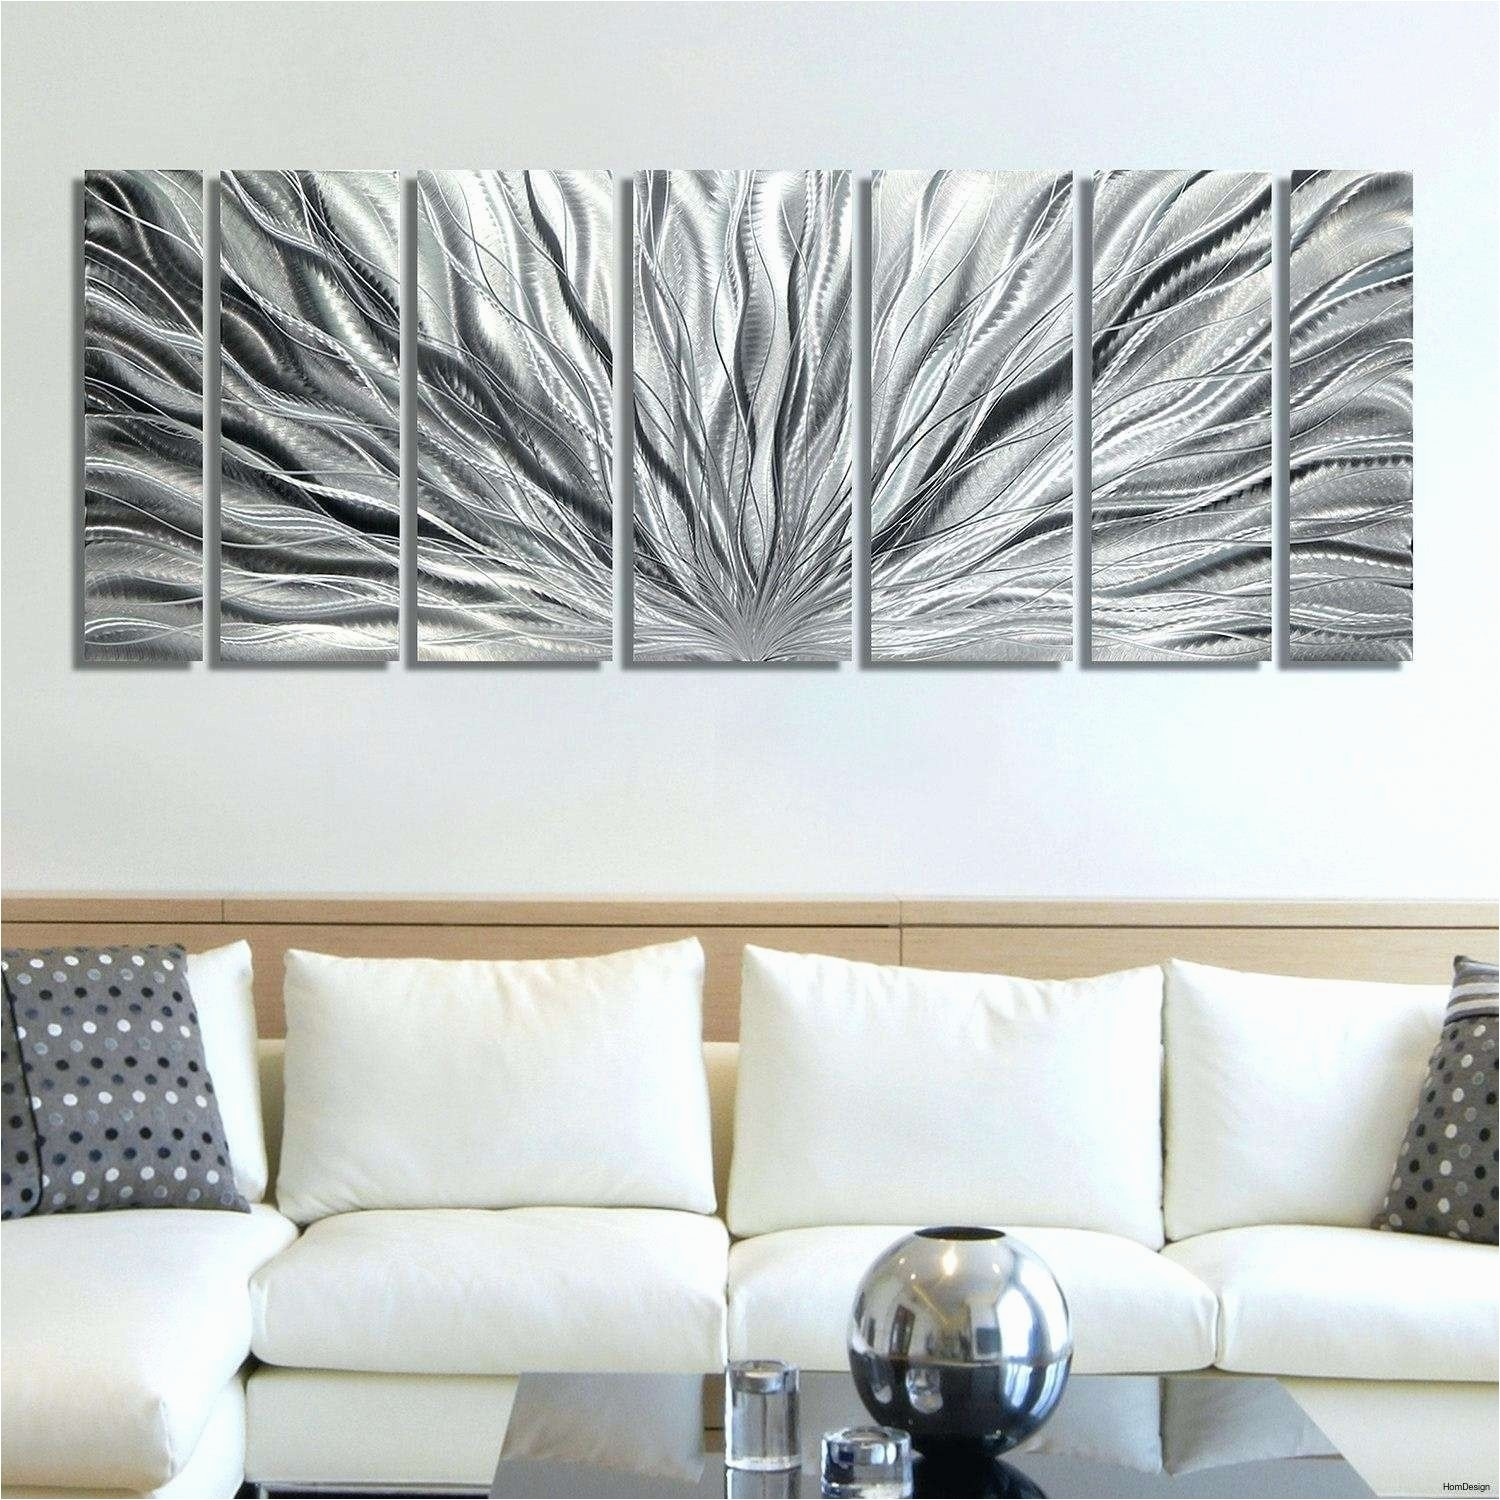 Living Room Corner Wall Decor Luxury Wall Art For Living Room Ideas Pertaining To Most Up To Date Corner Wall Art (View 9 of 20)